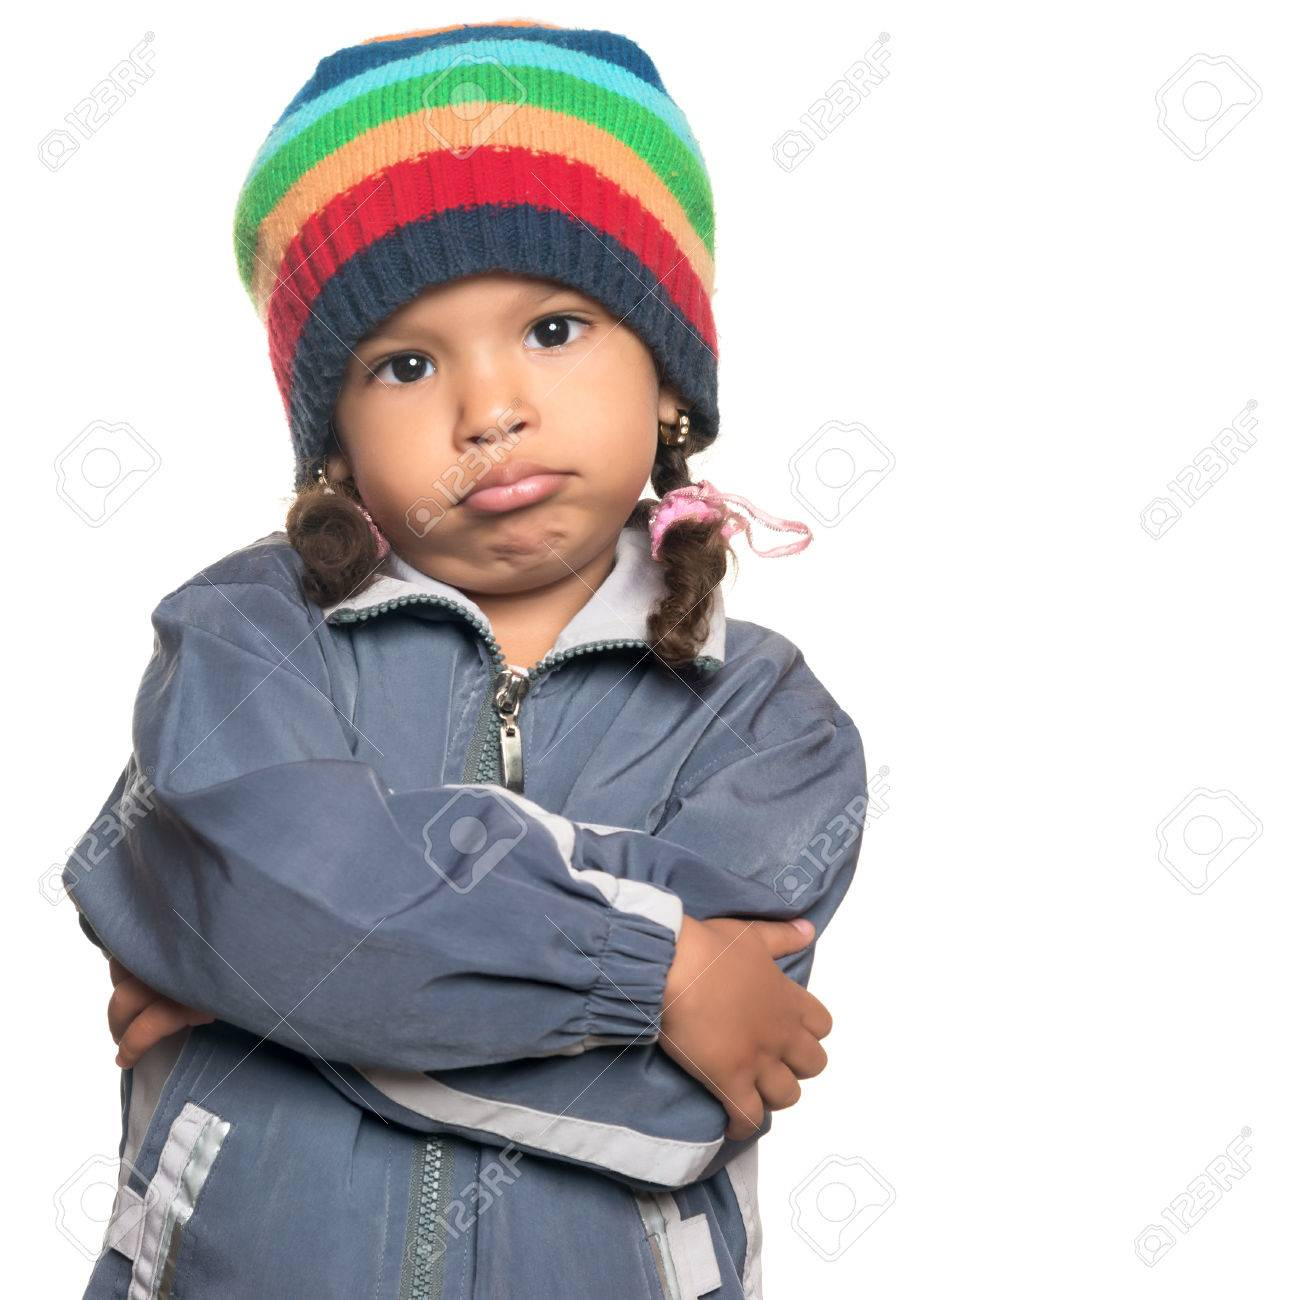 Funny Mixed Race Little Girl Wearing A Colorful Beanie Hat And A Jacket With A Rapper